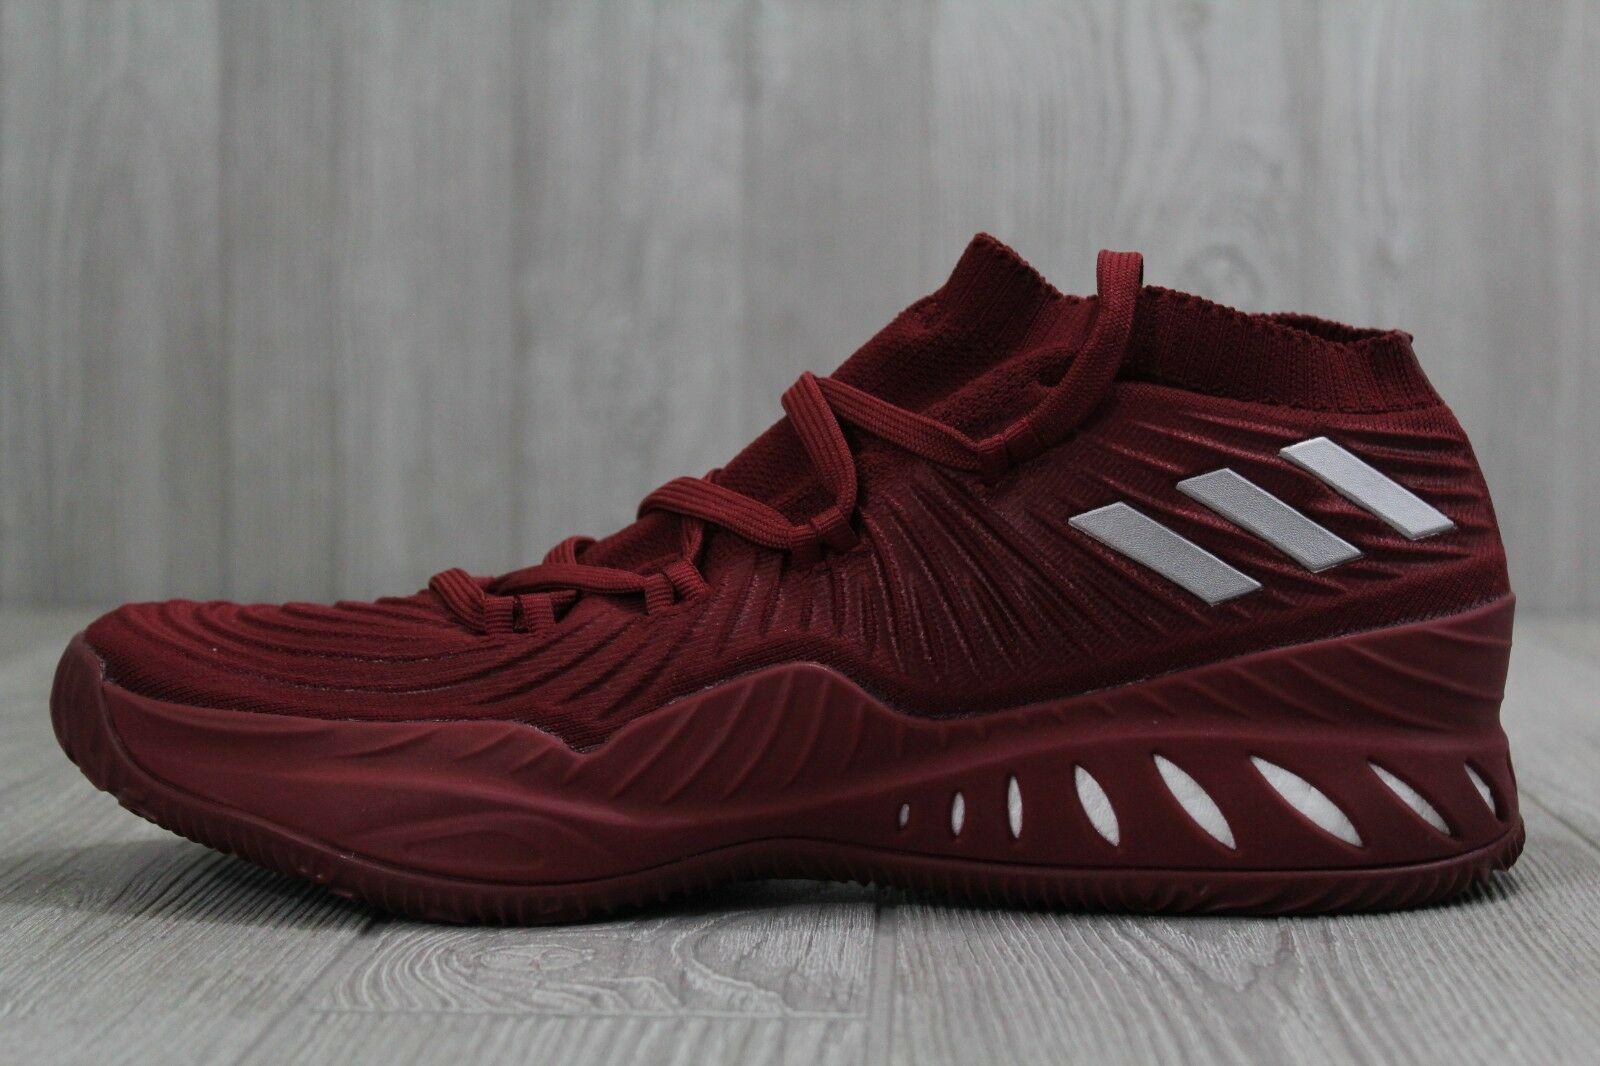 33 Crazy Explosive 2017 PK Primeknit Mens Basketball shoes Burgandy Sz 14, 15